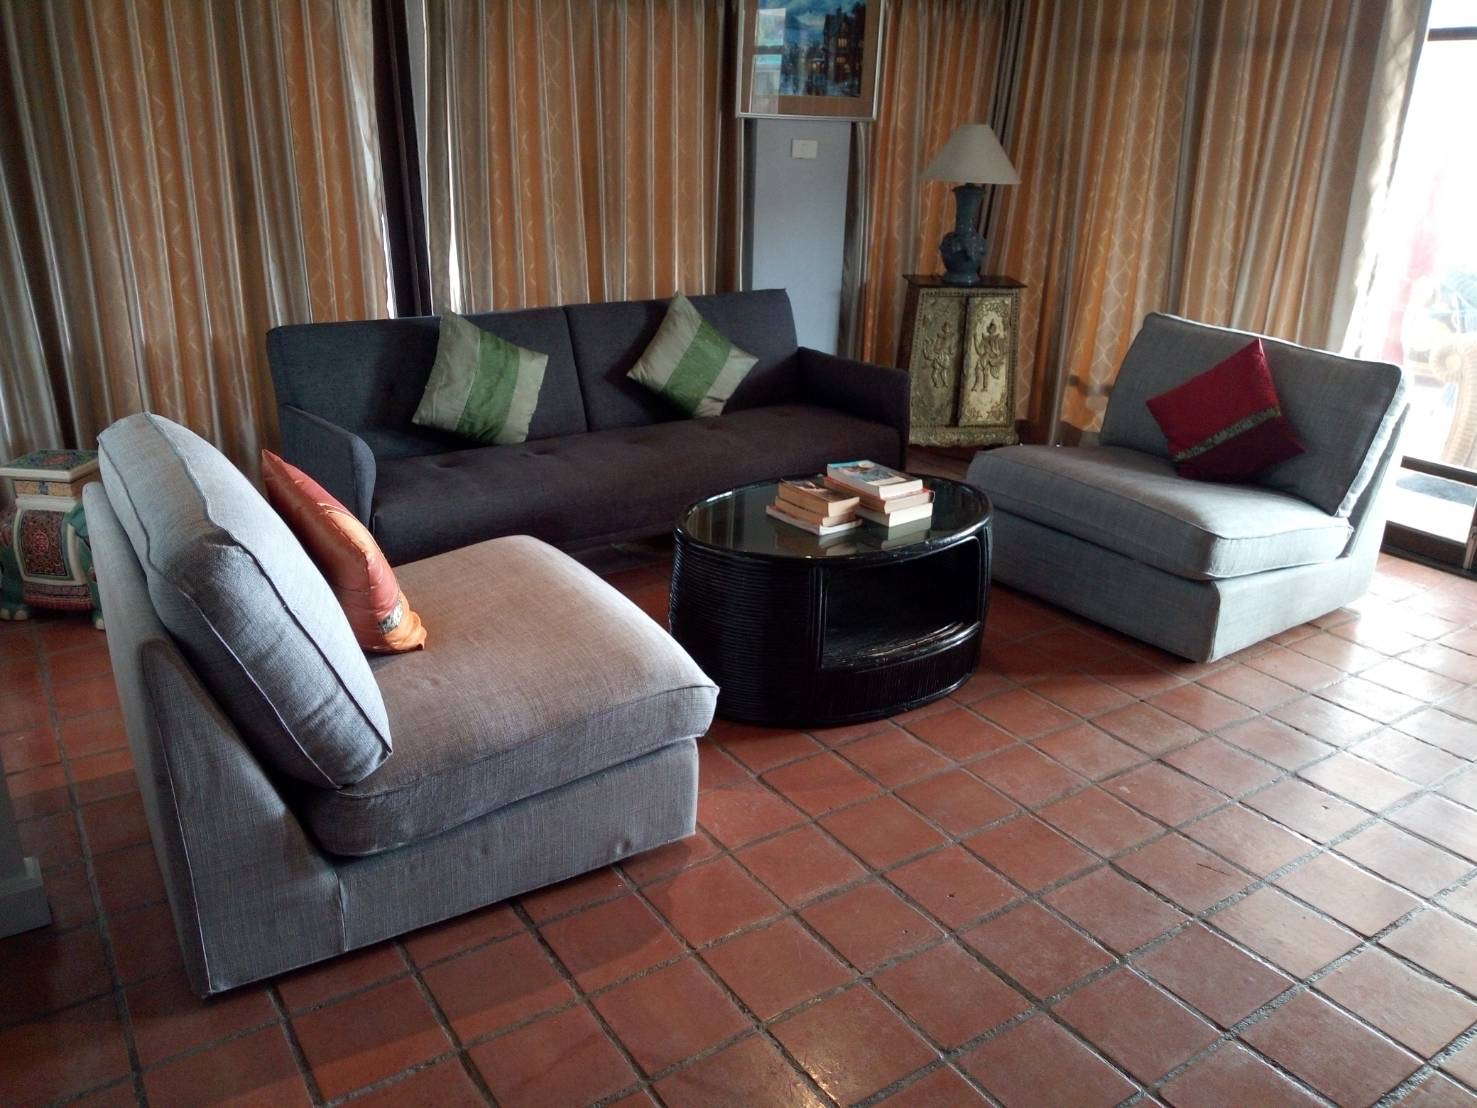 2 bedrooms Apartment for rent and sale